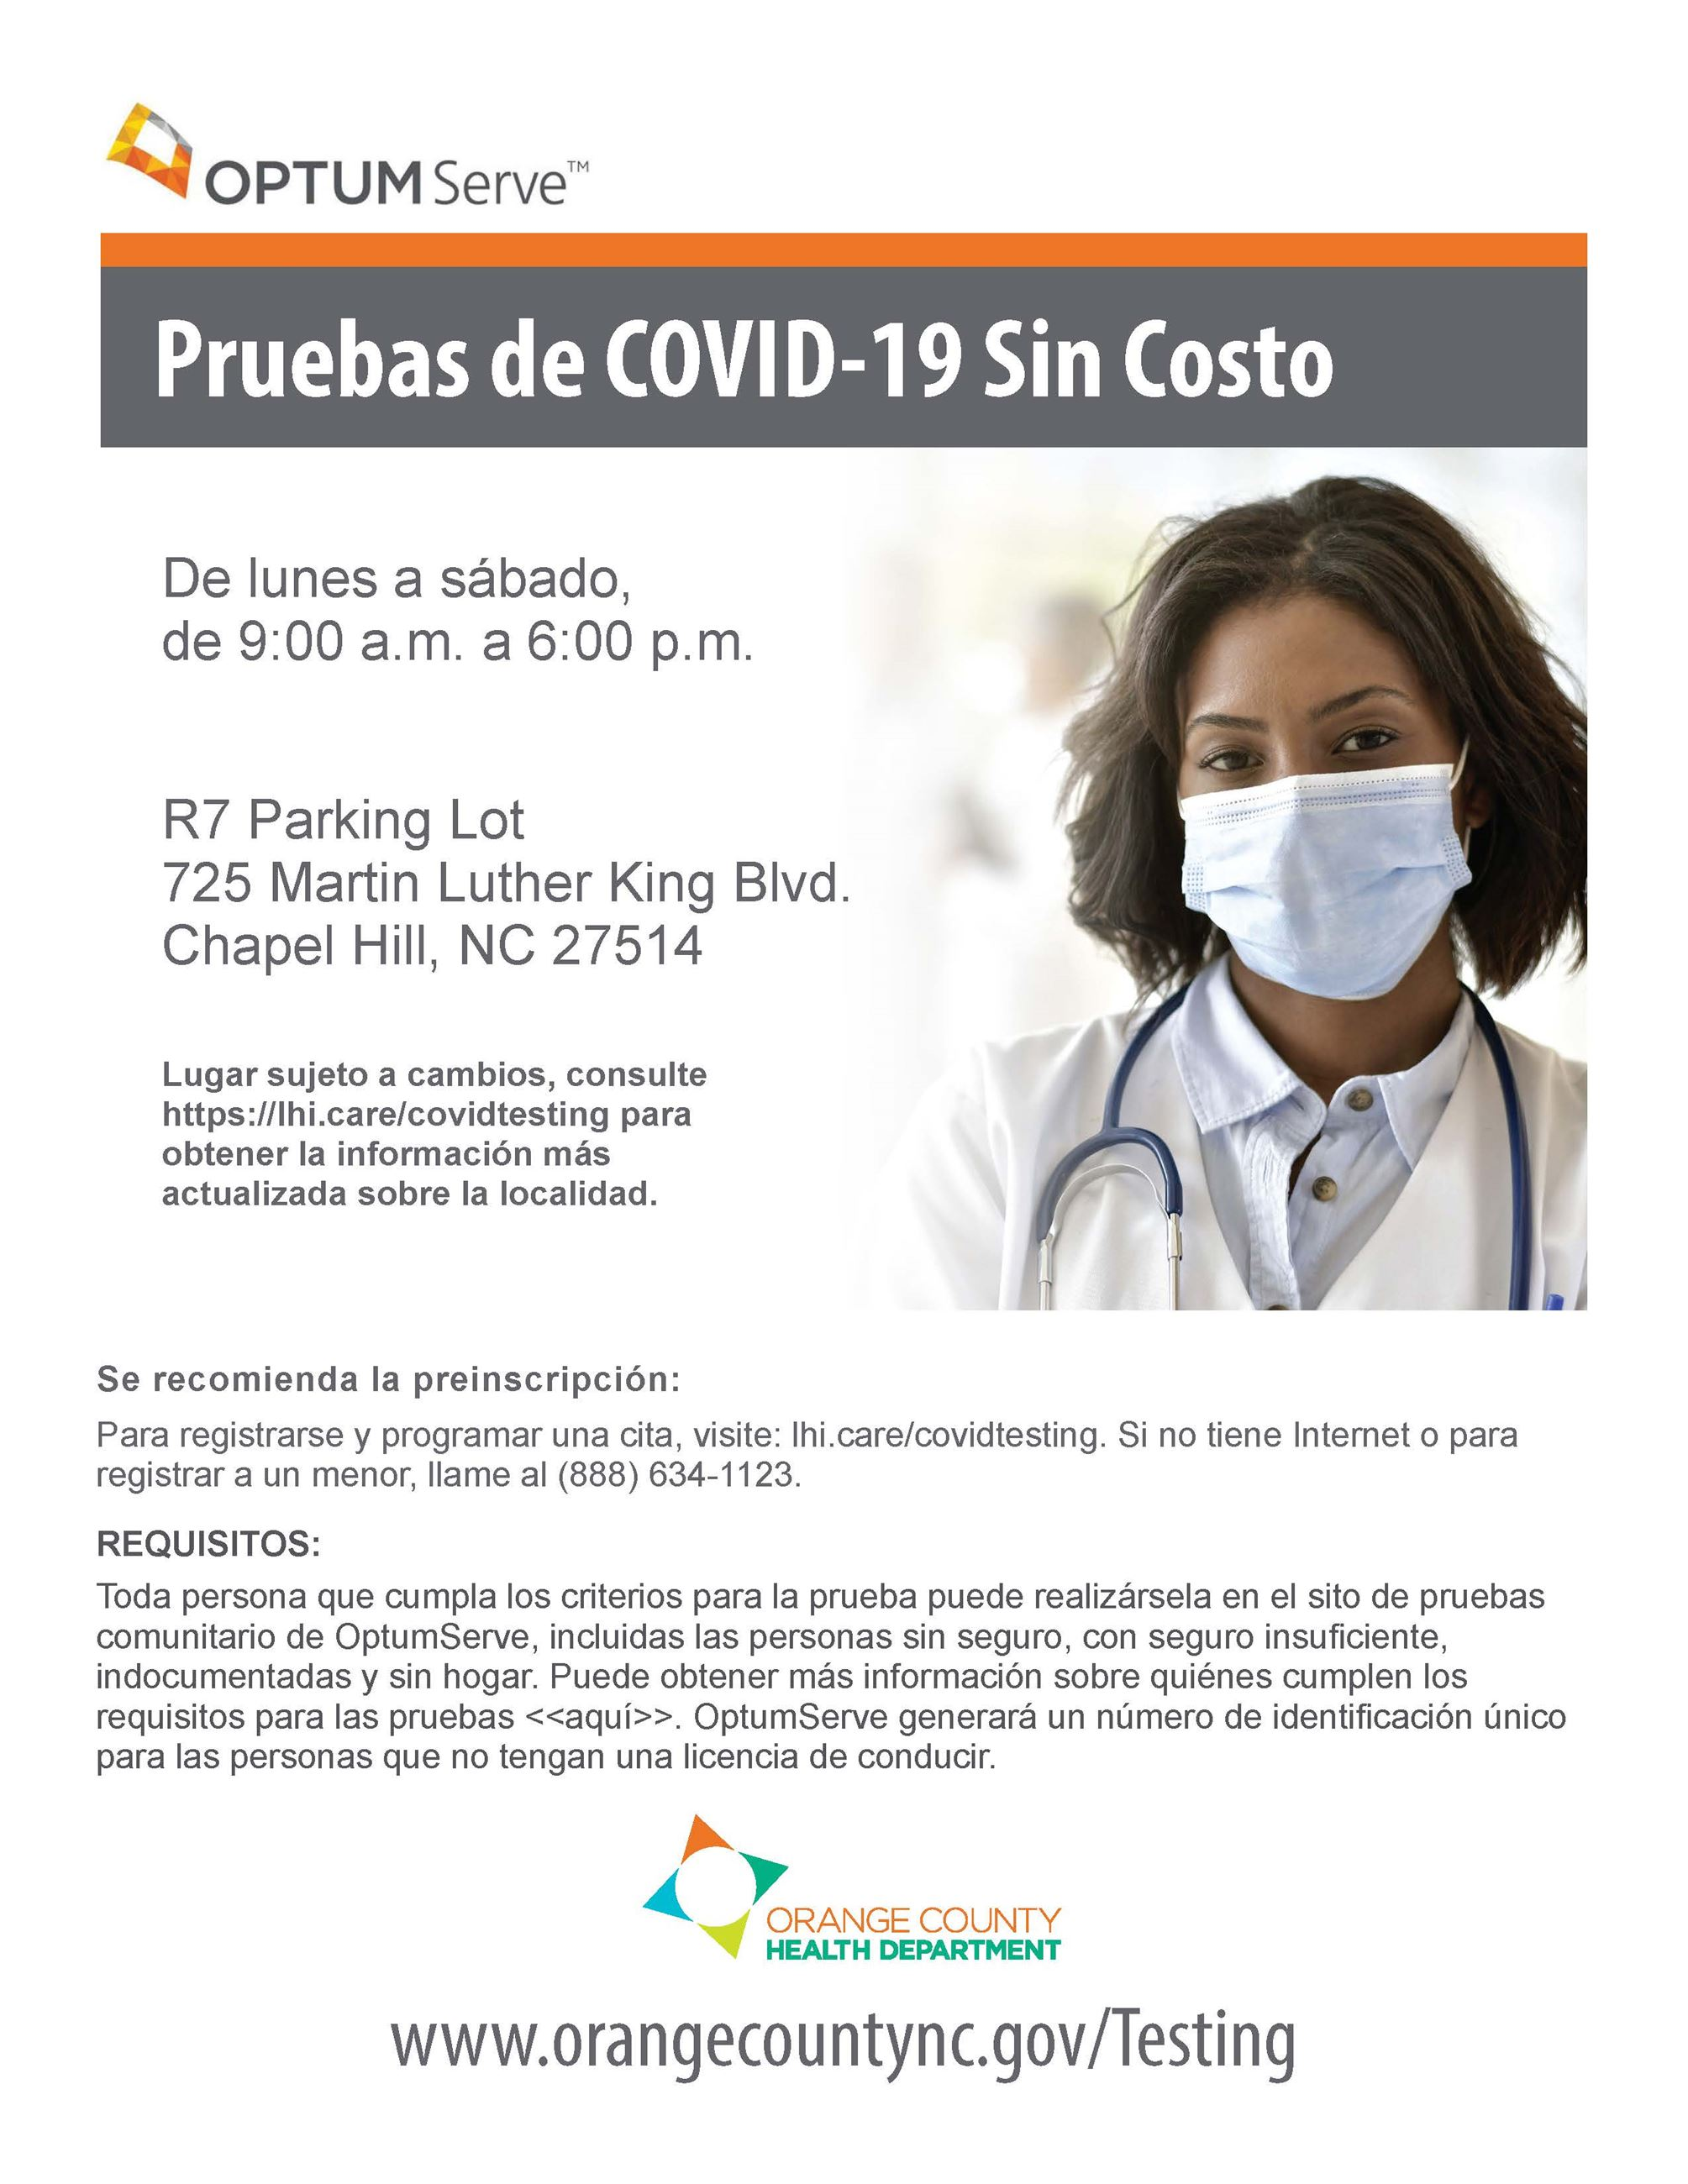 Optum_Covid19Flyer_R7_WeekdayTesting_SPA Opens in new window